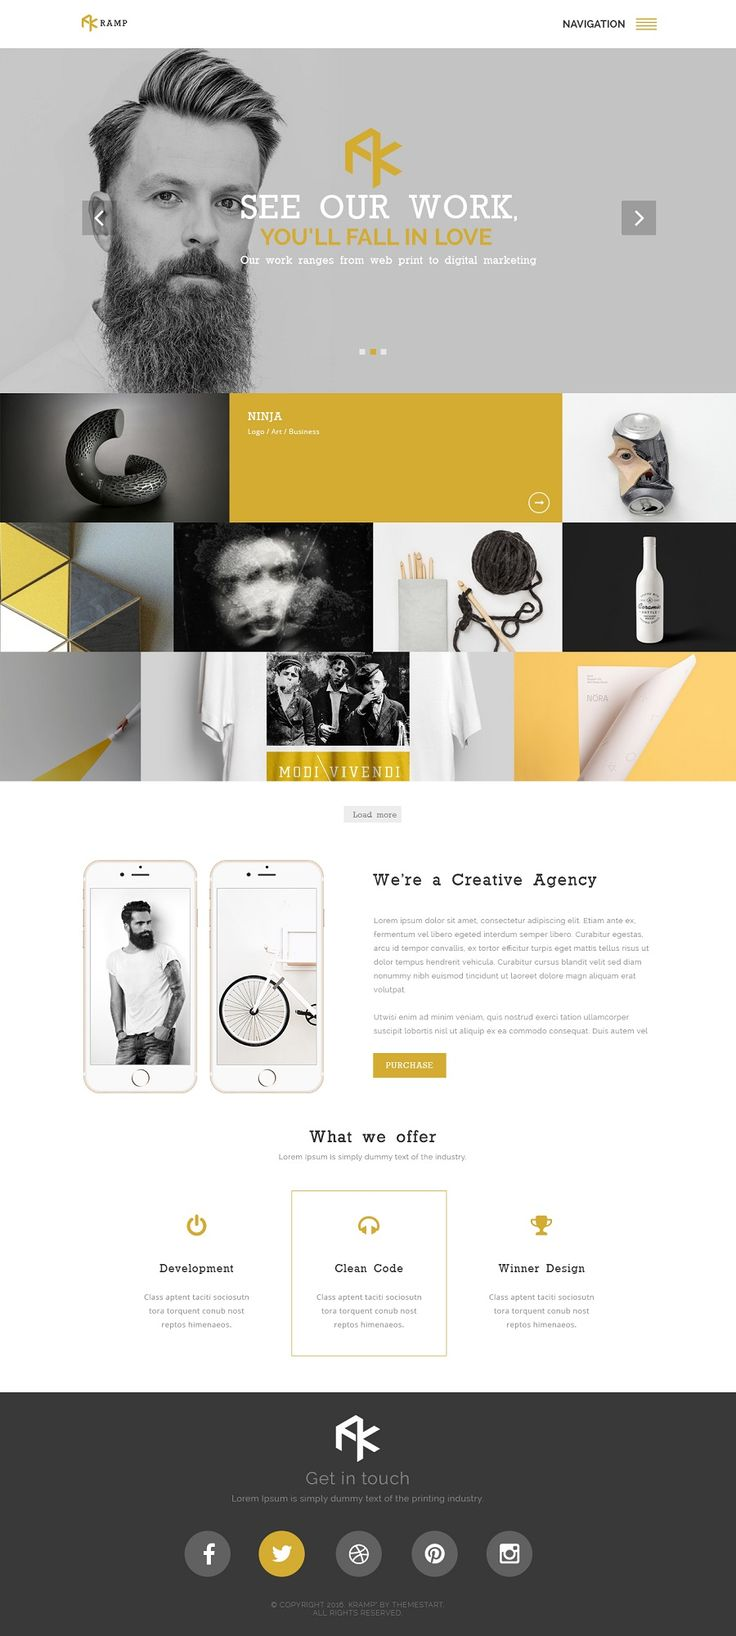 creative themes design for professional trendy websites homepage design - Best Home Page Design